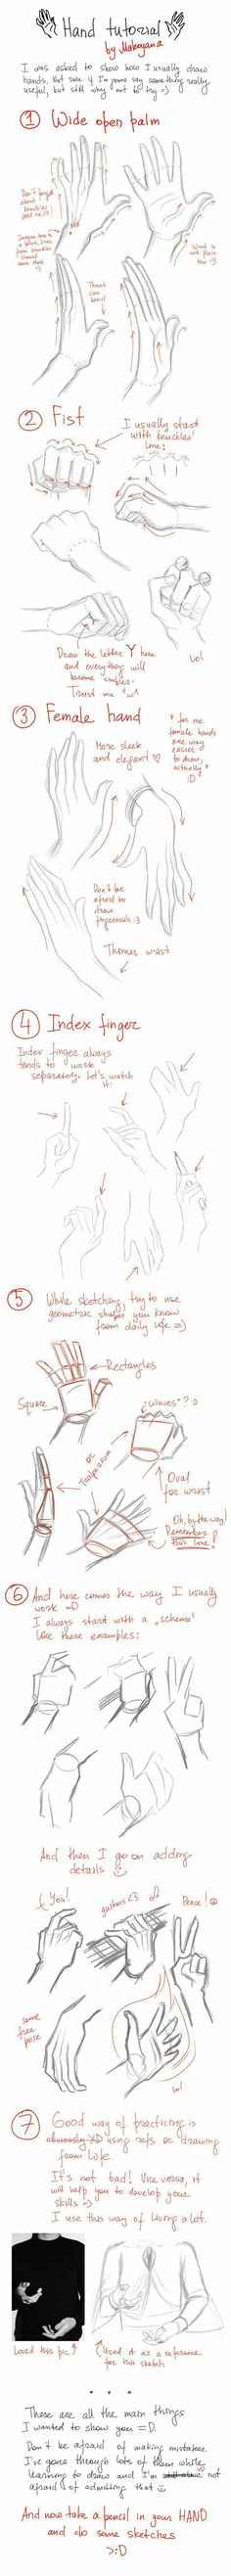 Hand Tutorial, text, hands; How to Draw Manga/Anime #Drawingtips